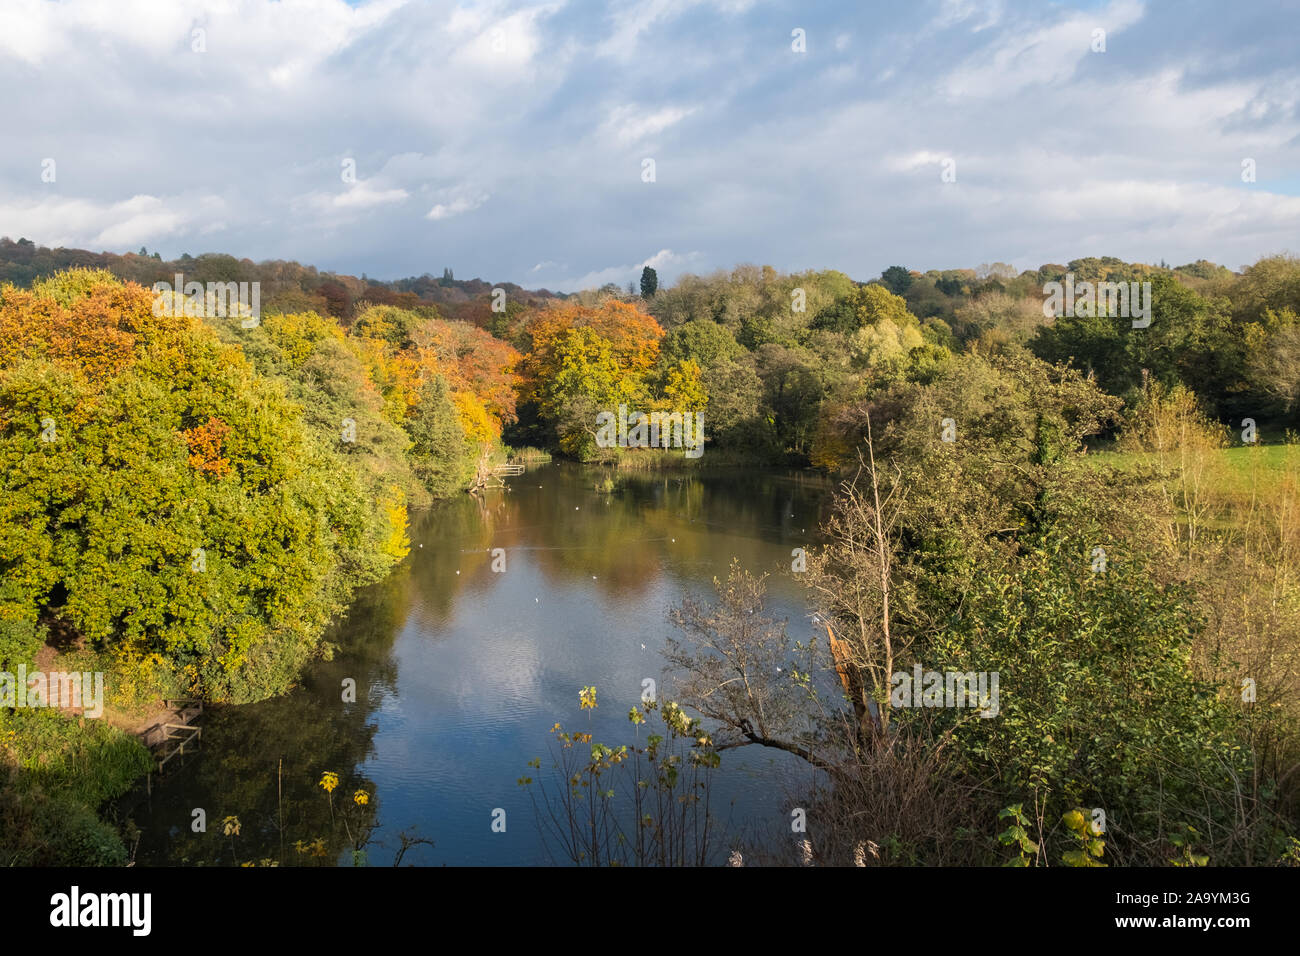 Halesowen High Resolution Stock Photography And Images Alamy